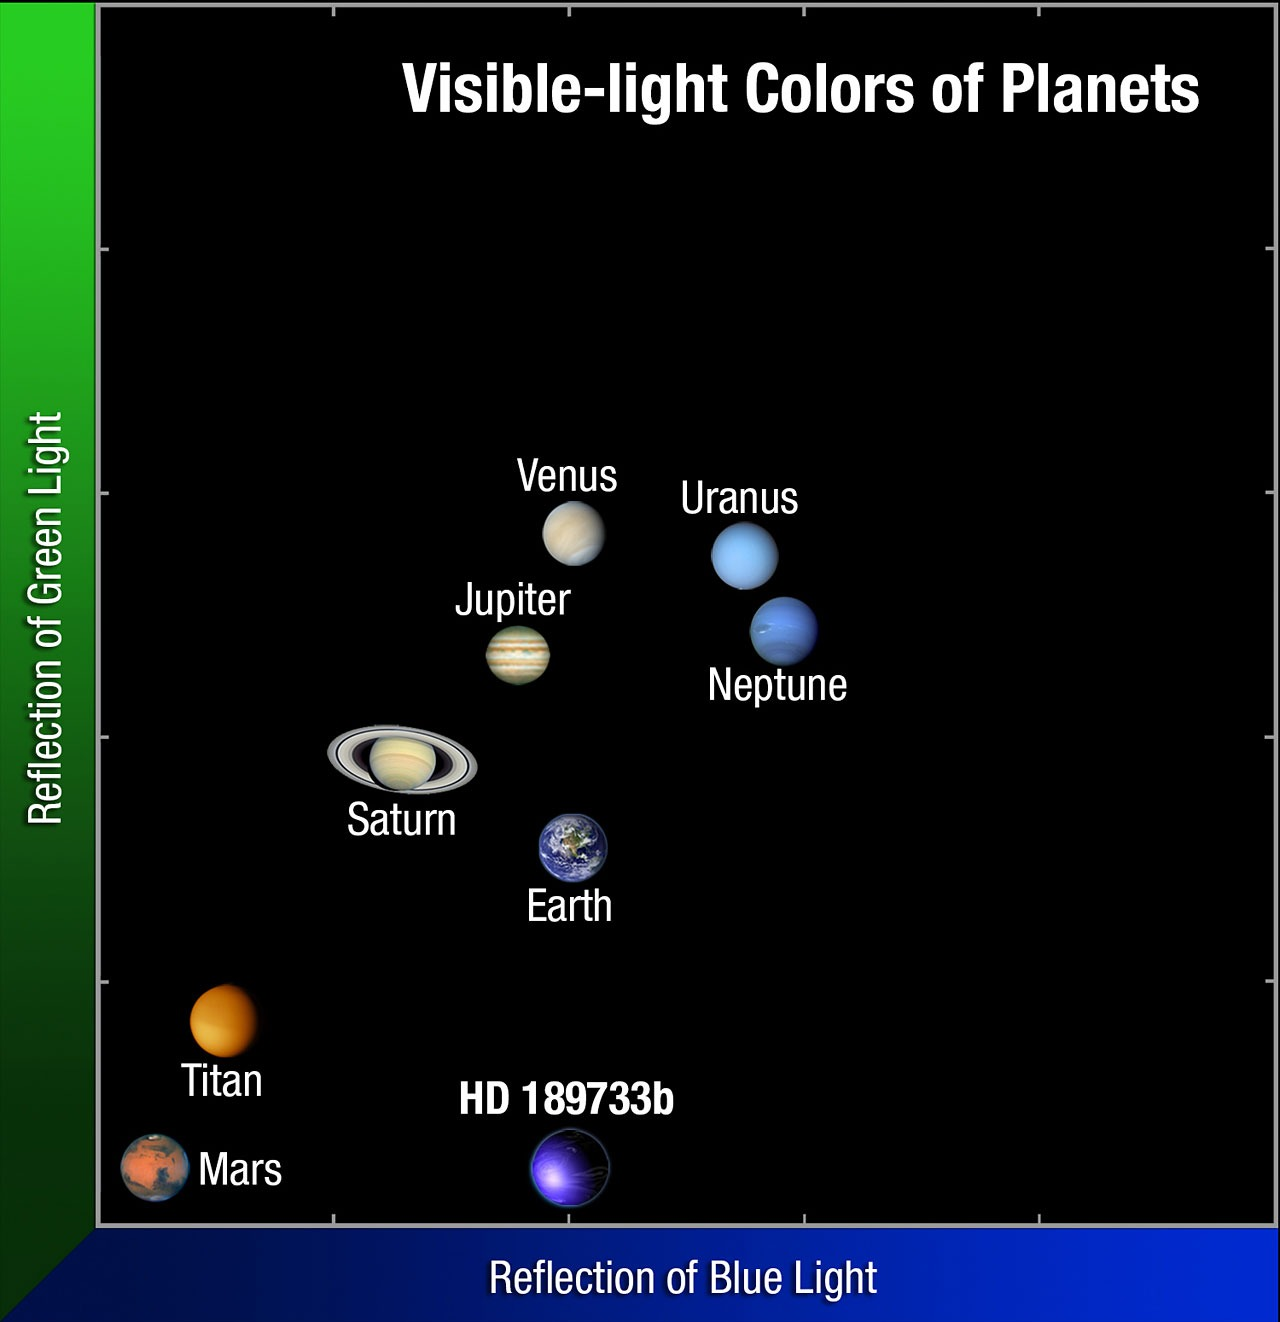 Visible colors of planets